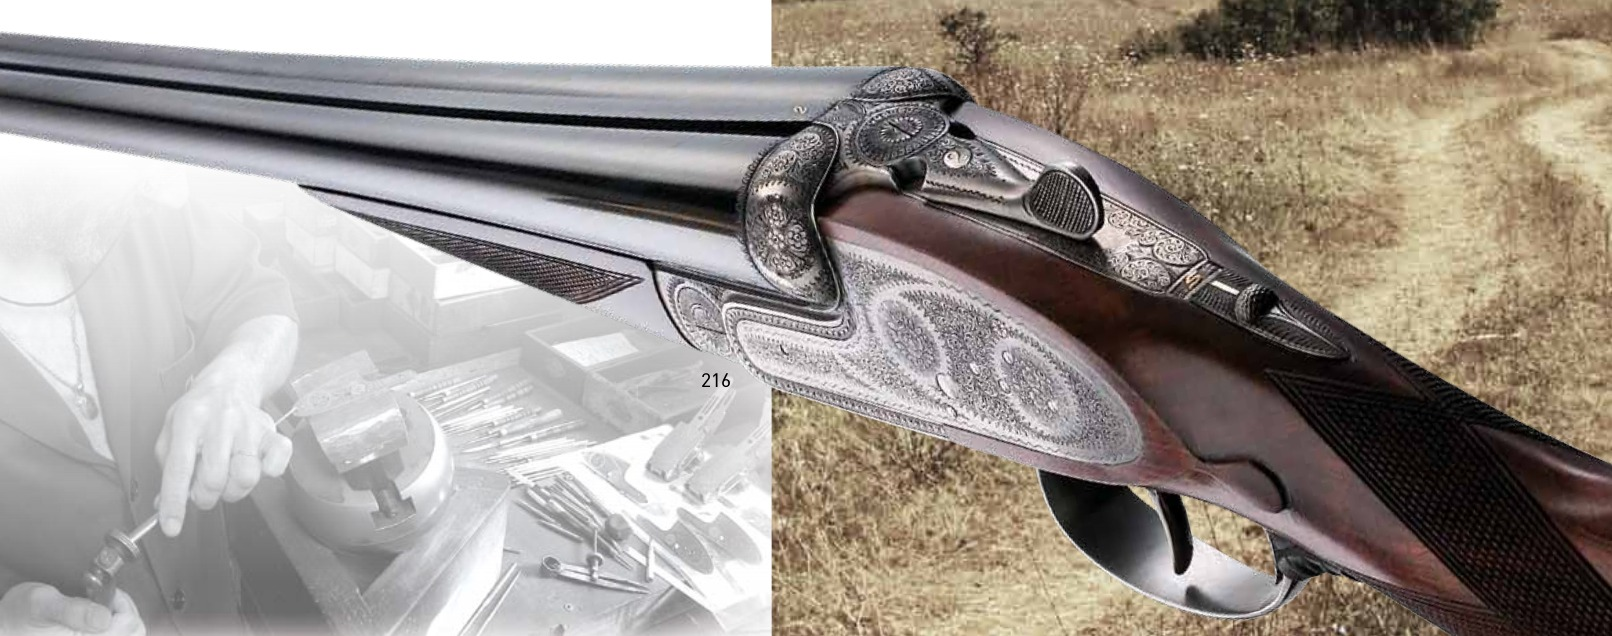 Grulla Armas side by side sidelock ejector shotgun